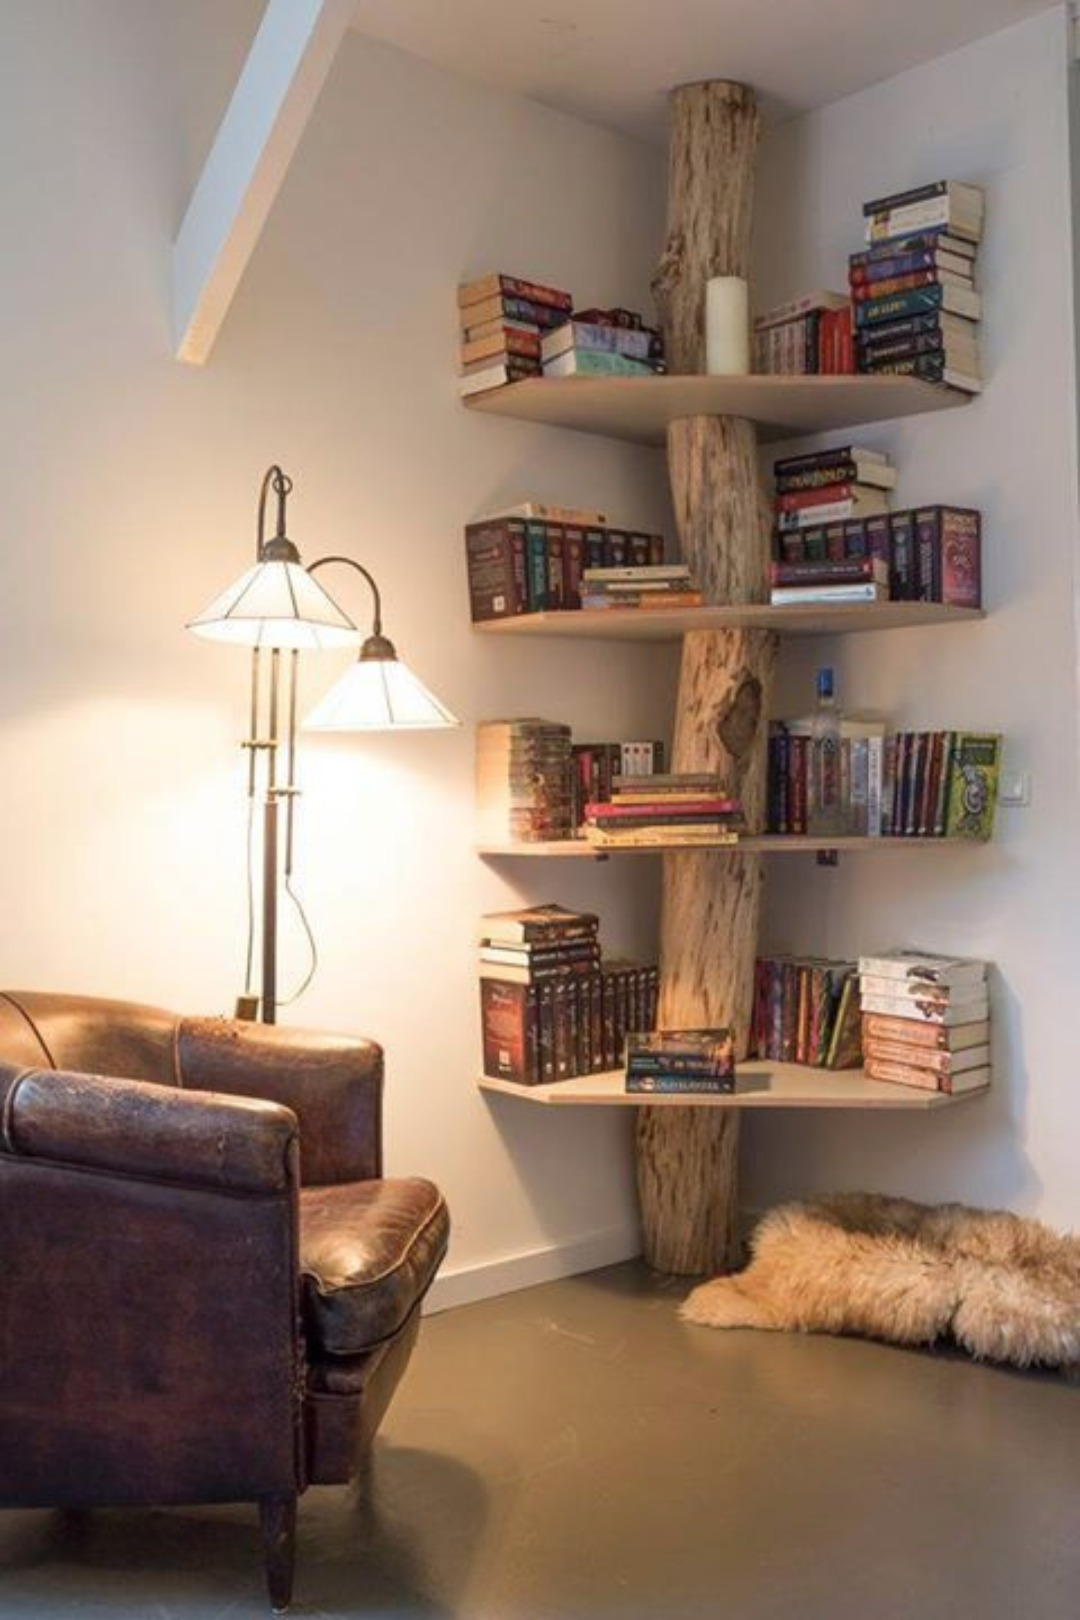 How To Decorate Corner Shelves 41 Ways to DIY Creative Corner Shelves 3